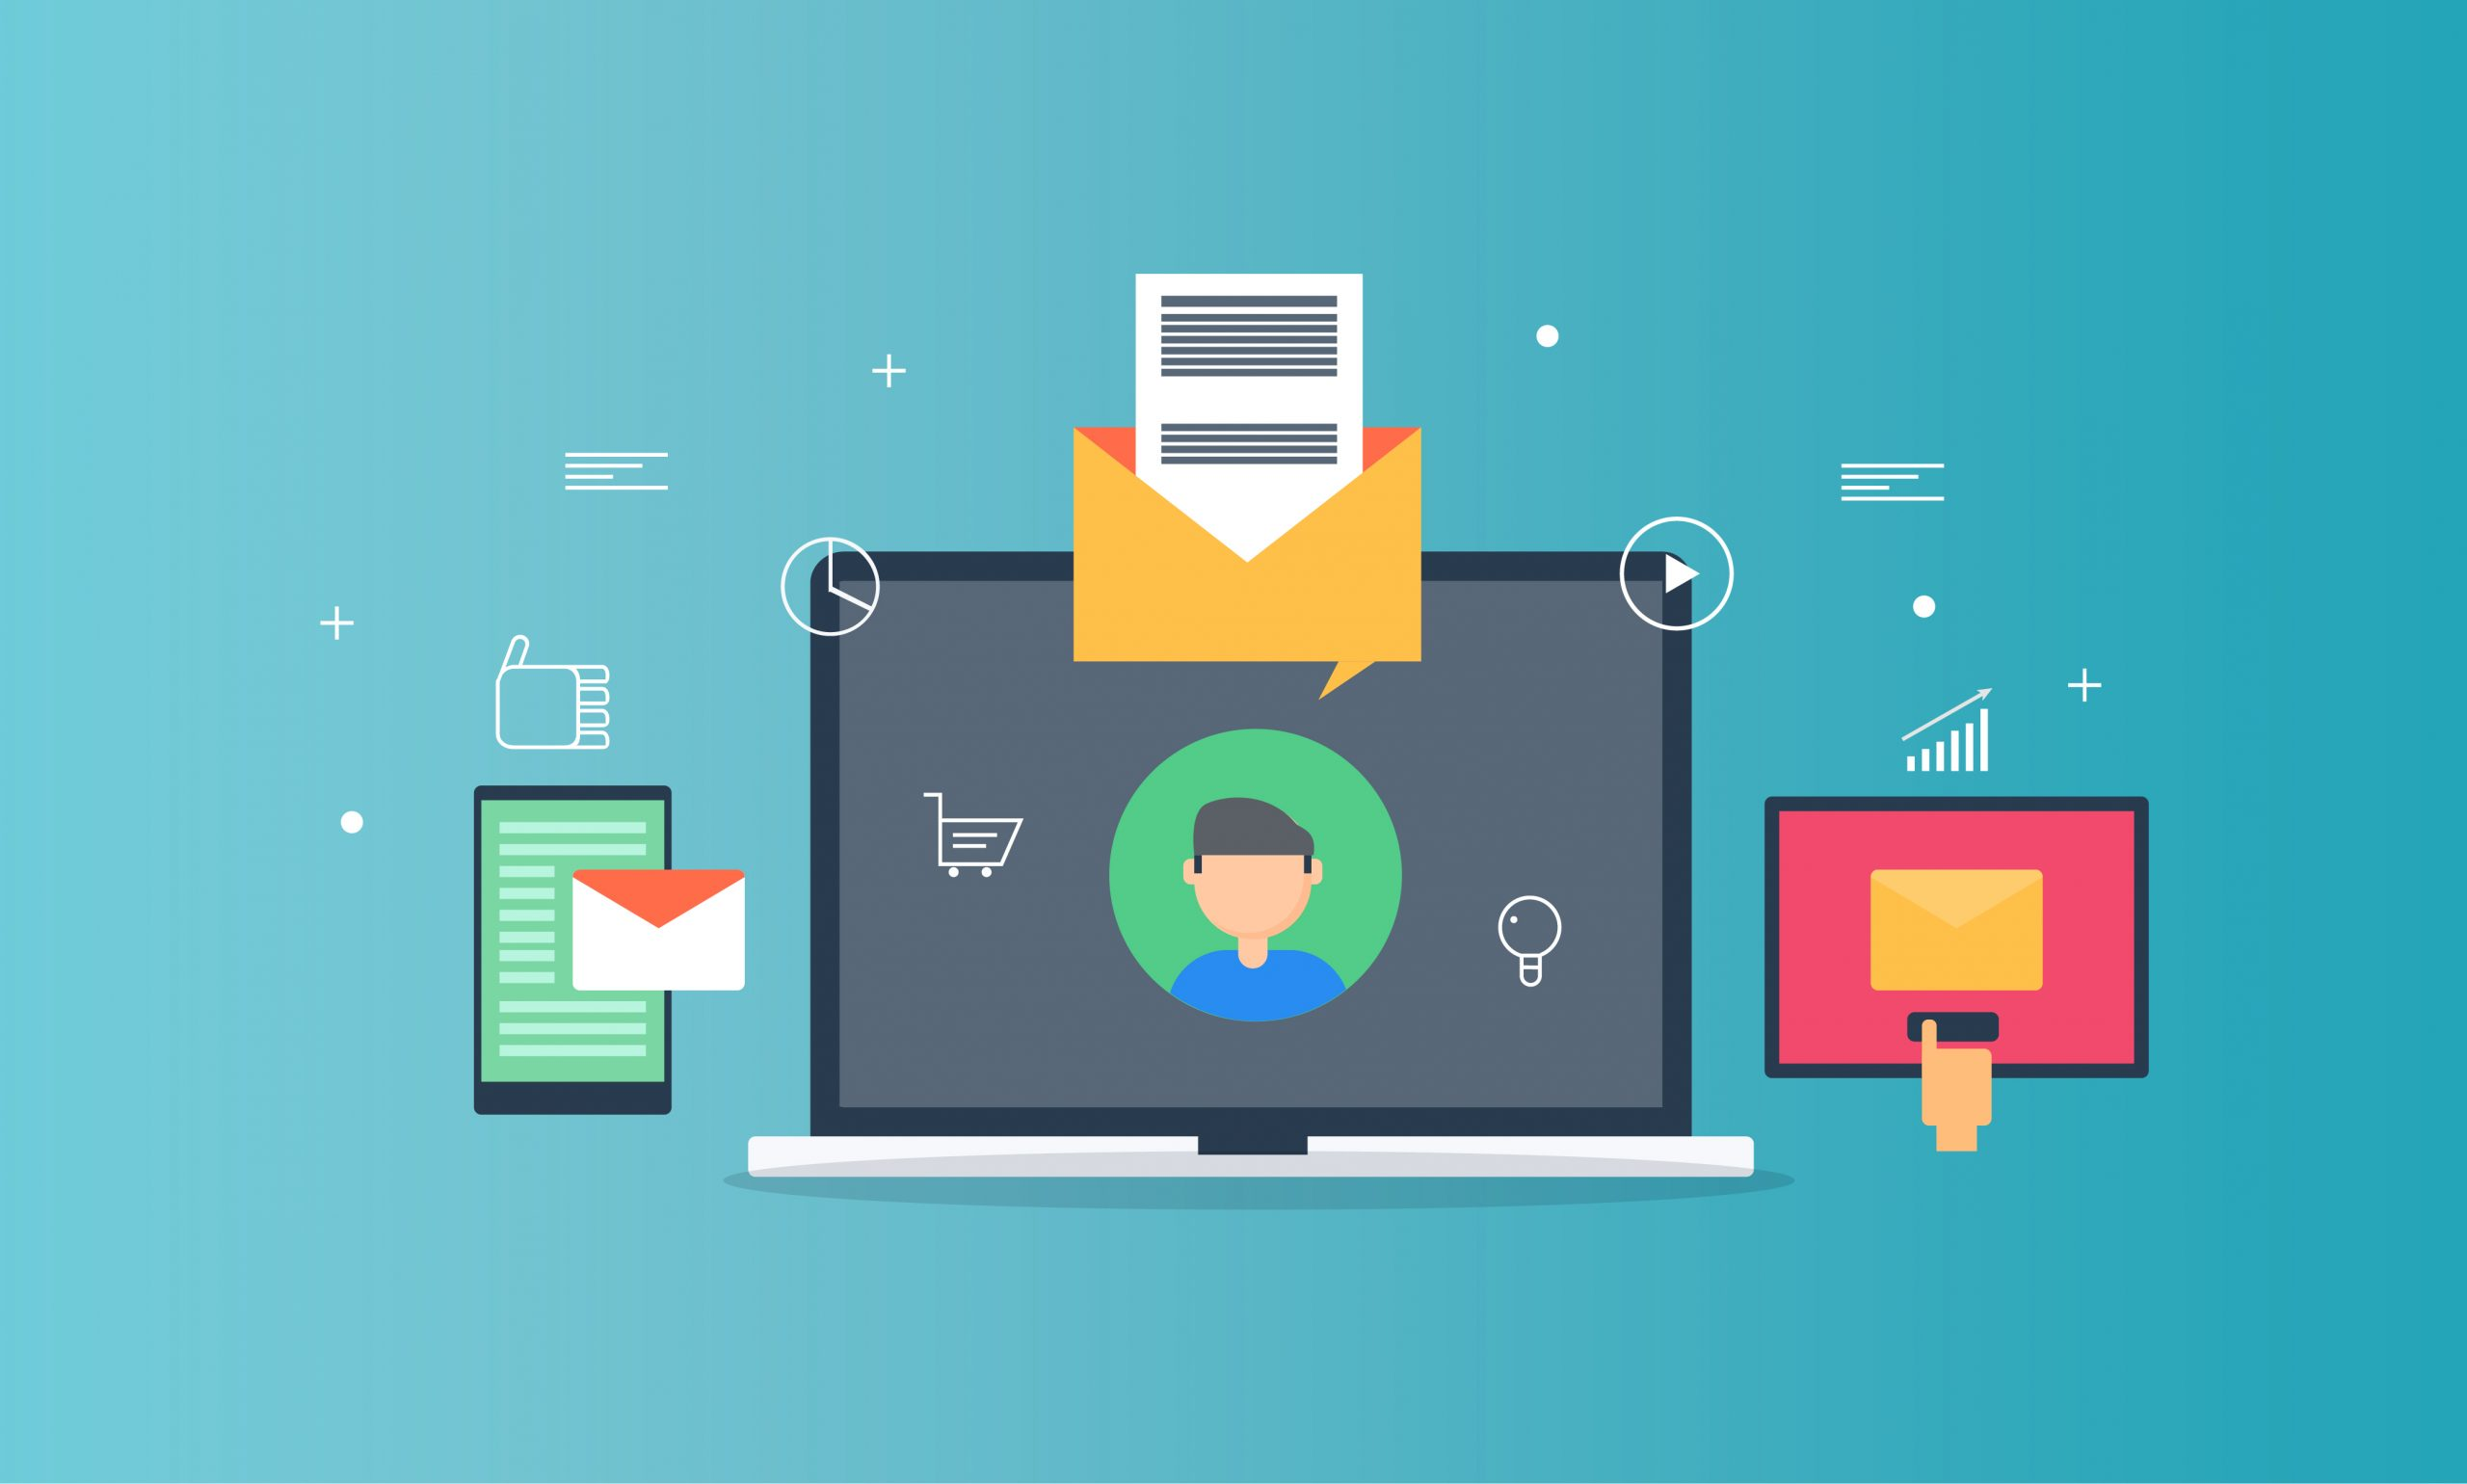 7 email marketing tips for small businesses